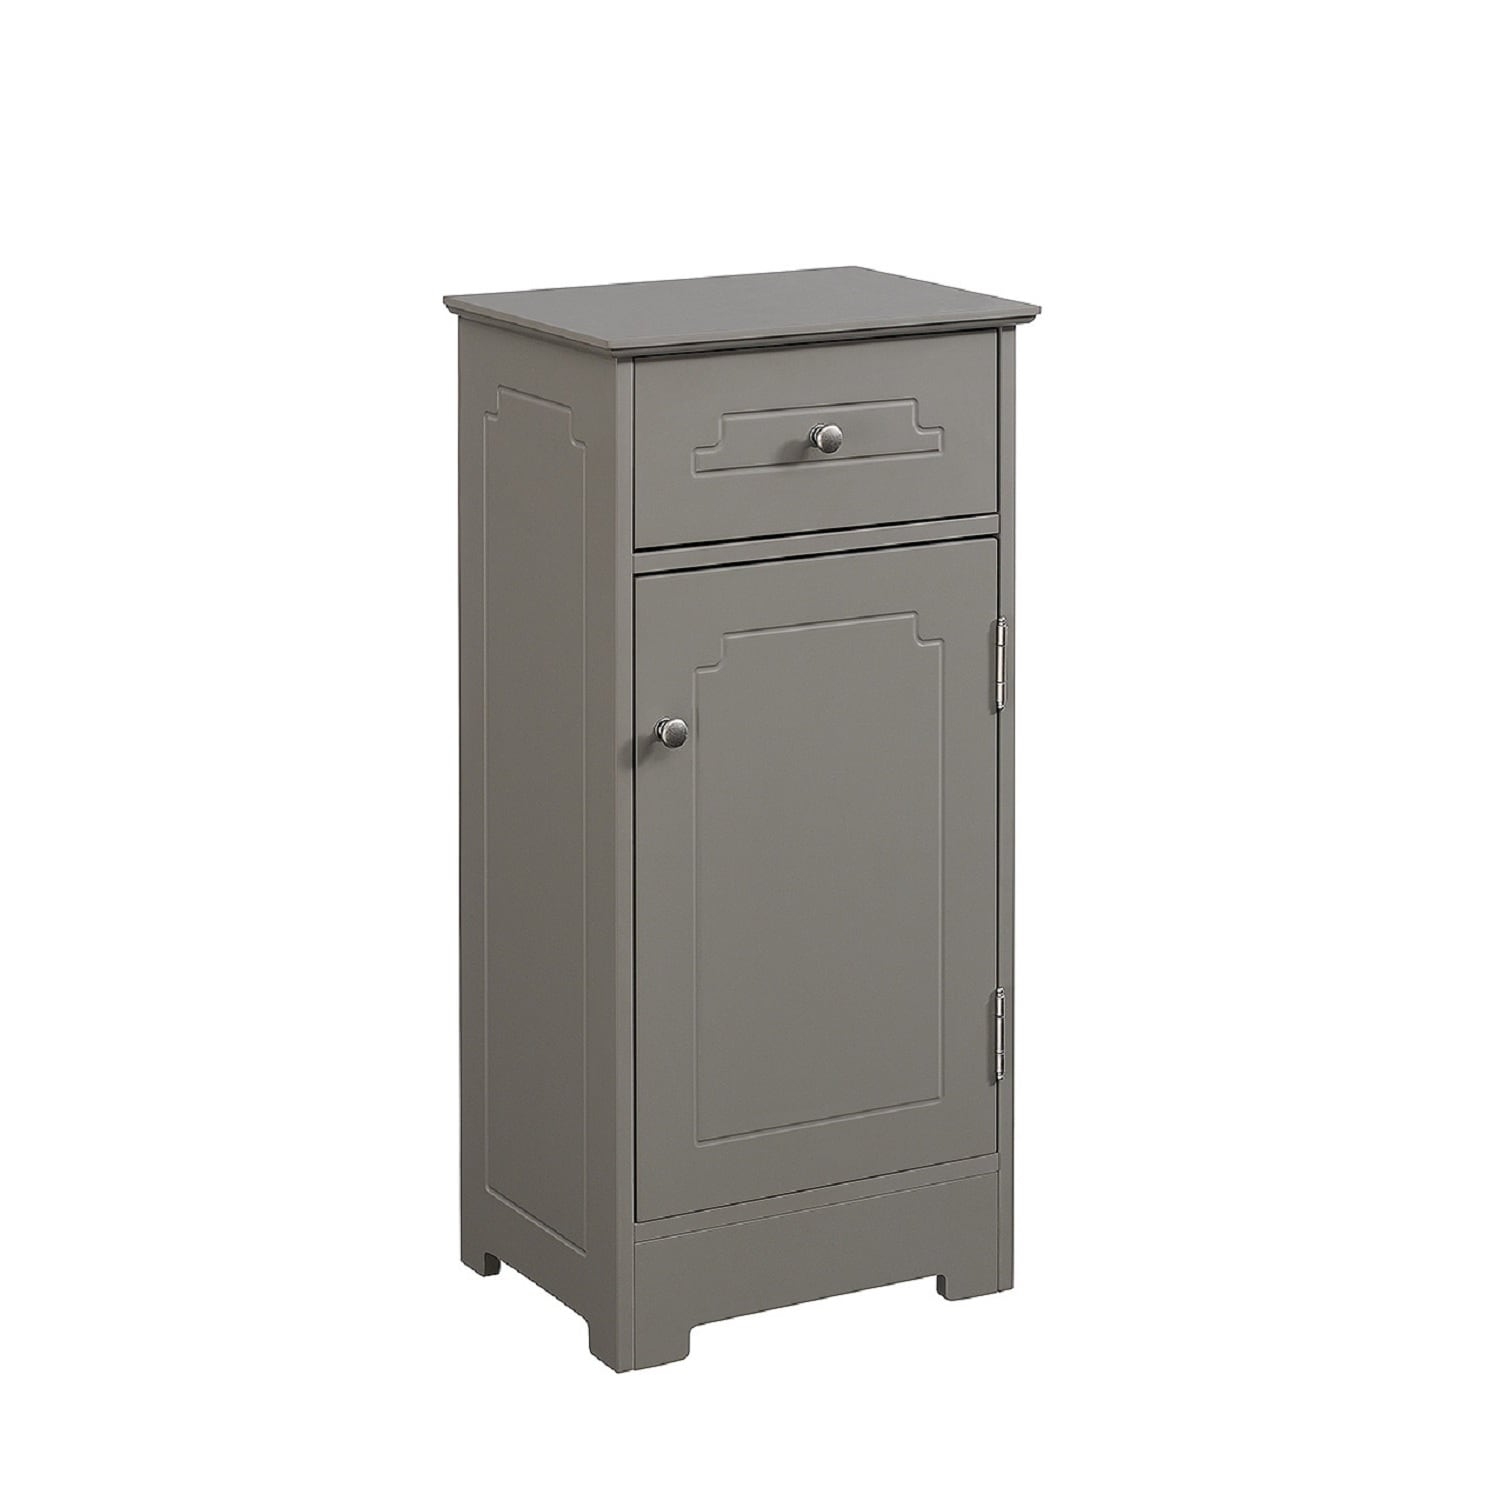 "Superbly 15.75"" x 32"" Free Standing Cabinet by RunFine Gr..."